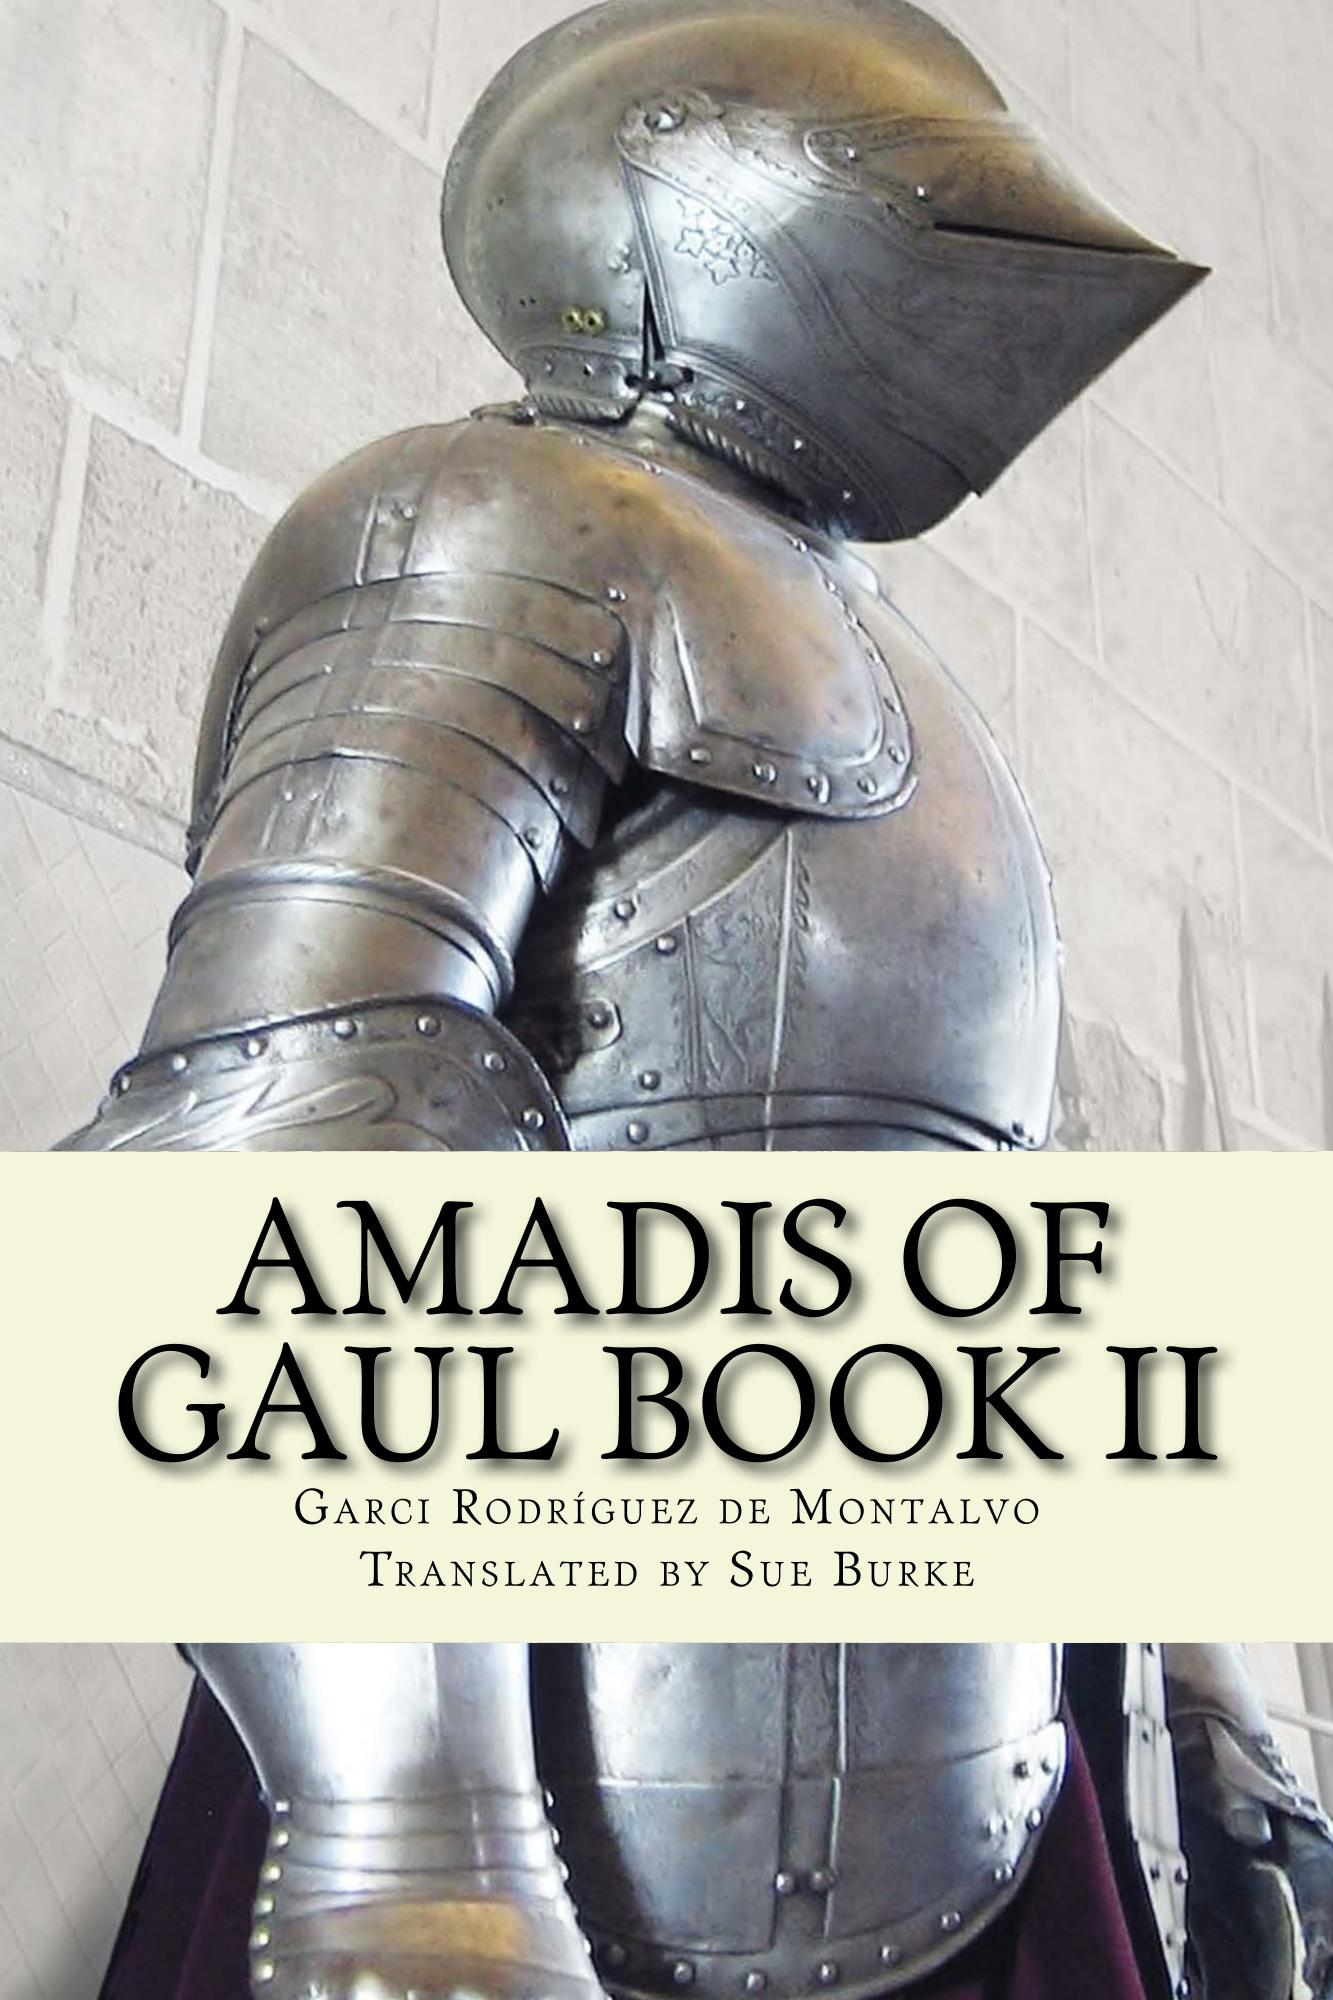 Amadis_of_Gaul_Cover_for_Kindle